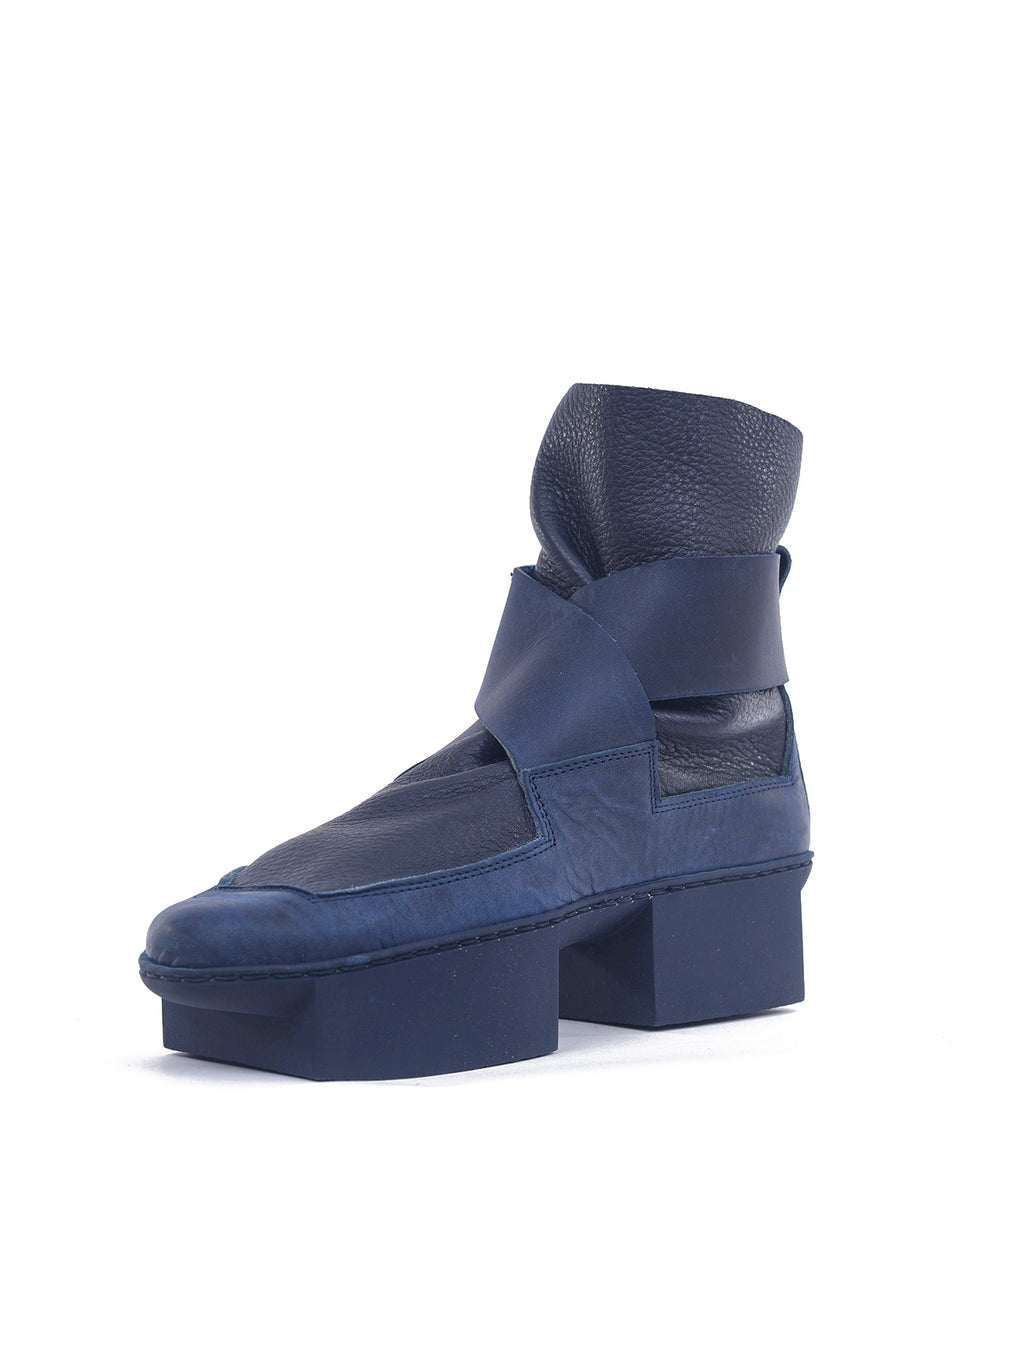 Trippen Shoes Spatula Box Bootie, Navy